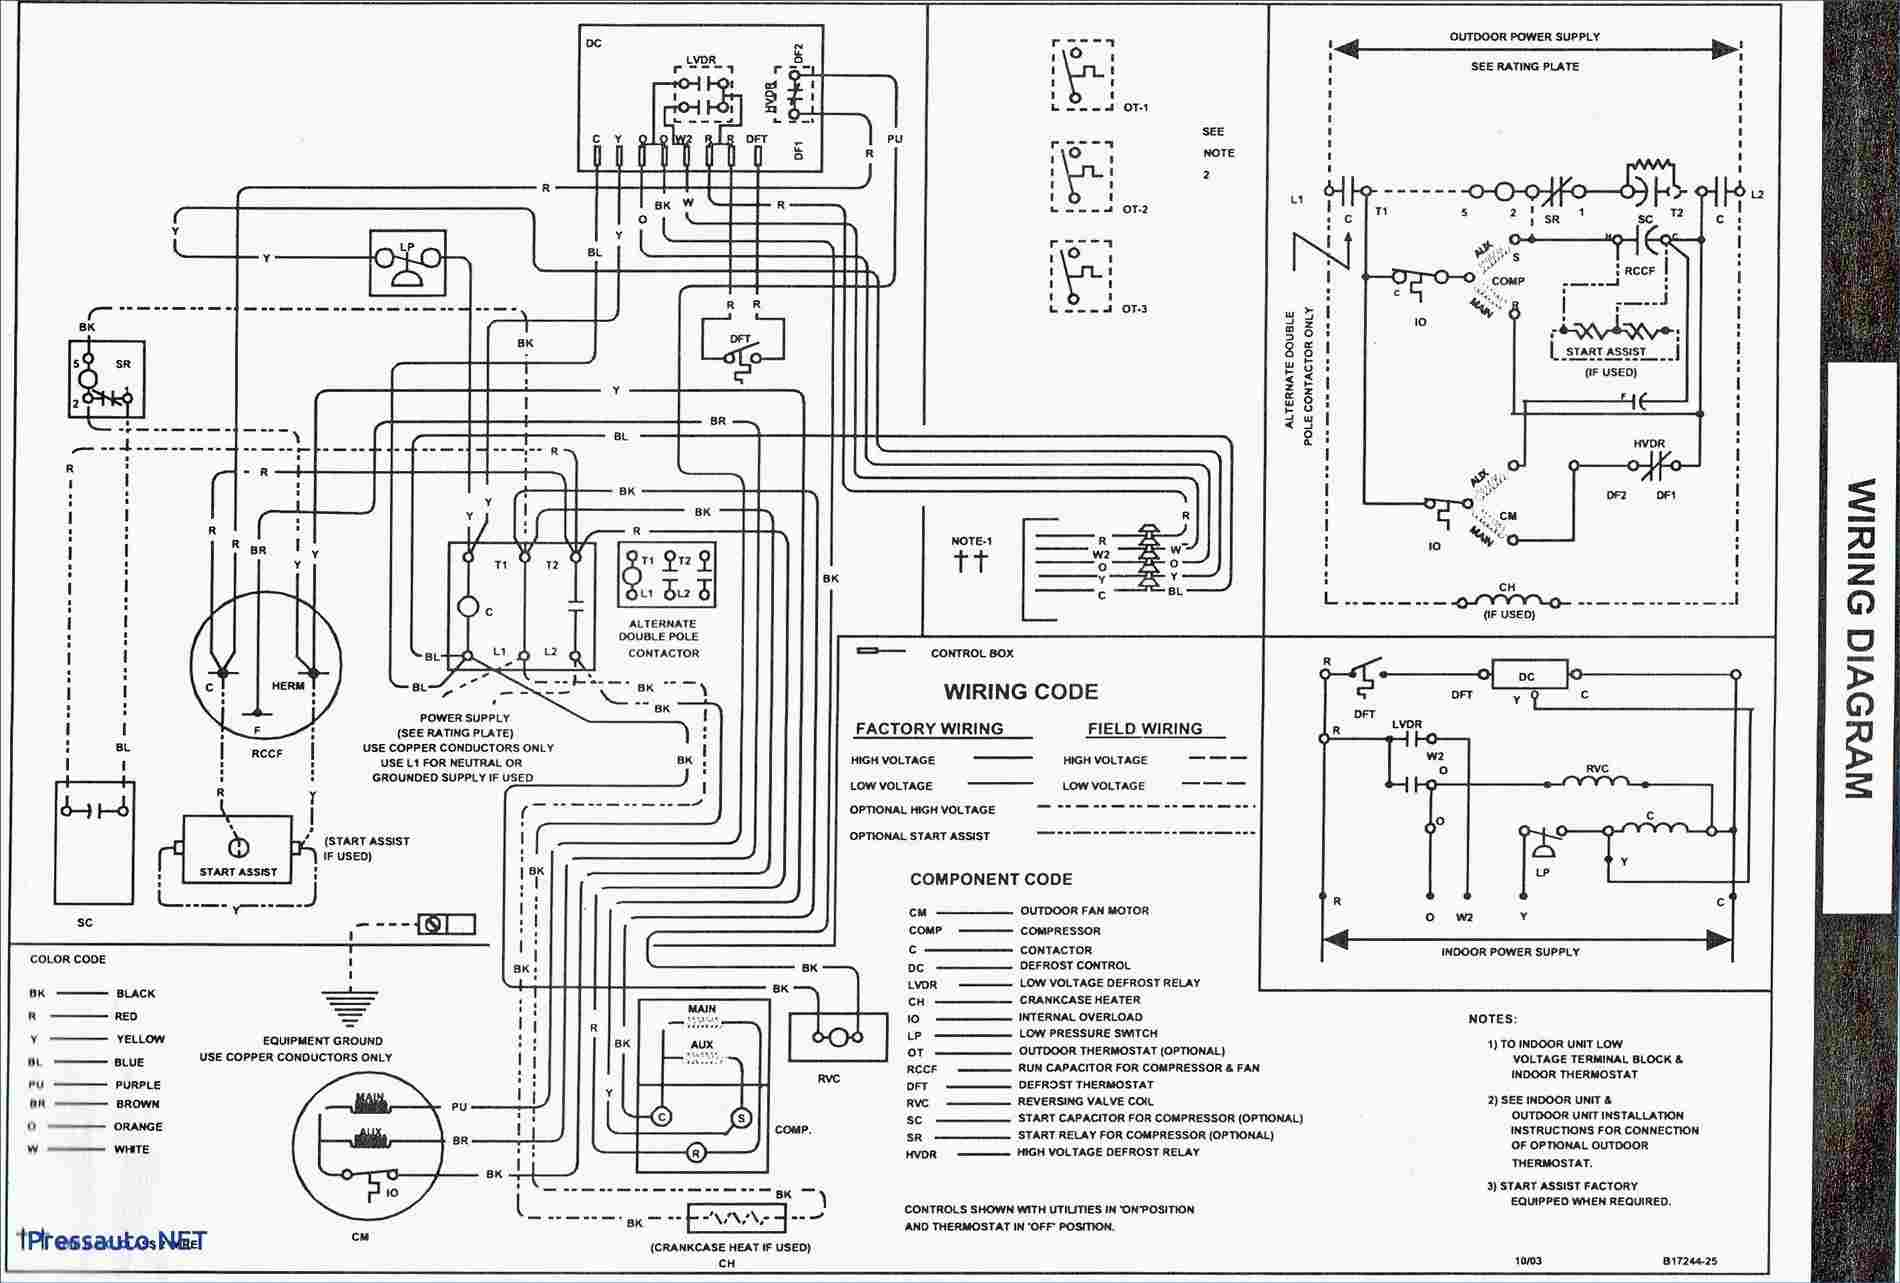 Goodman-Gmp-075-3-Furnace-Control-Board-Wiring-Diagram-Wire-Center-U - Electric Heat Wiring Diagram